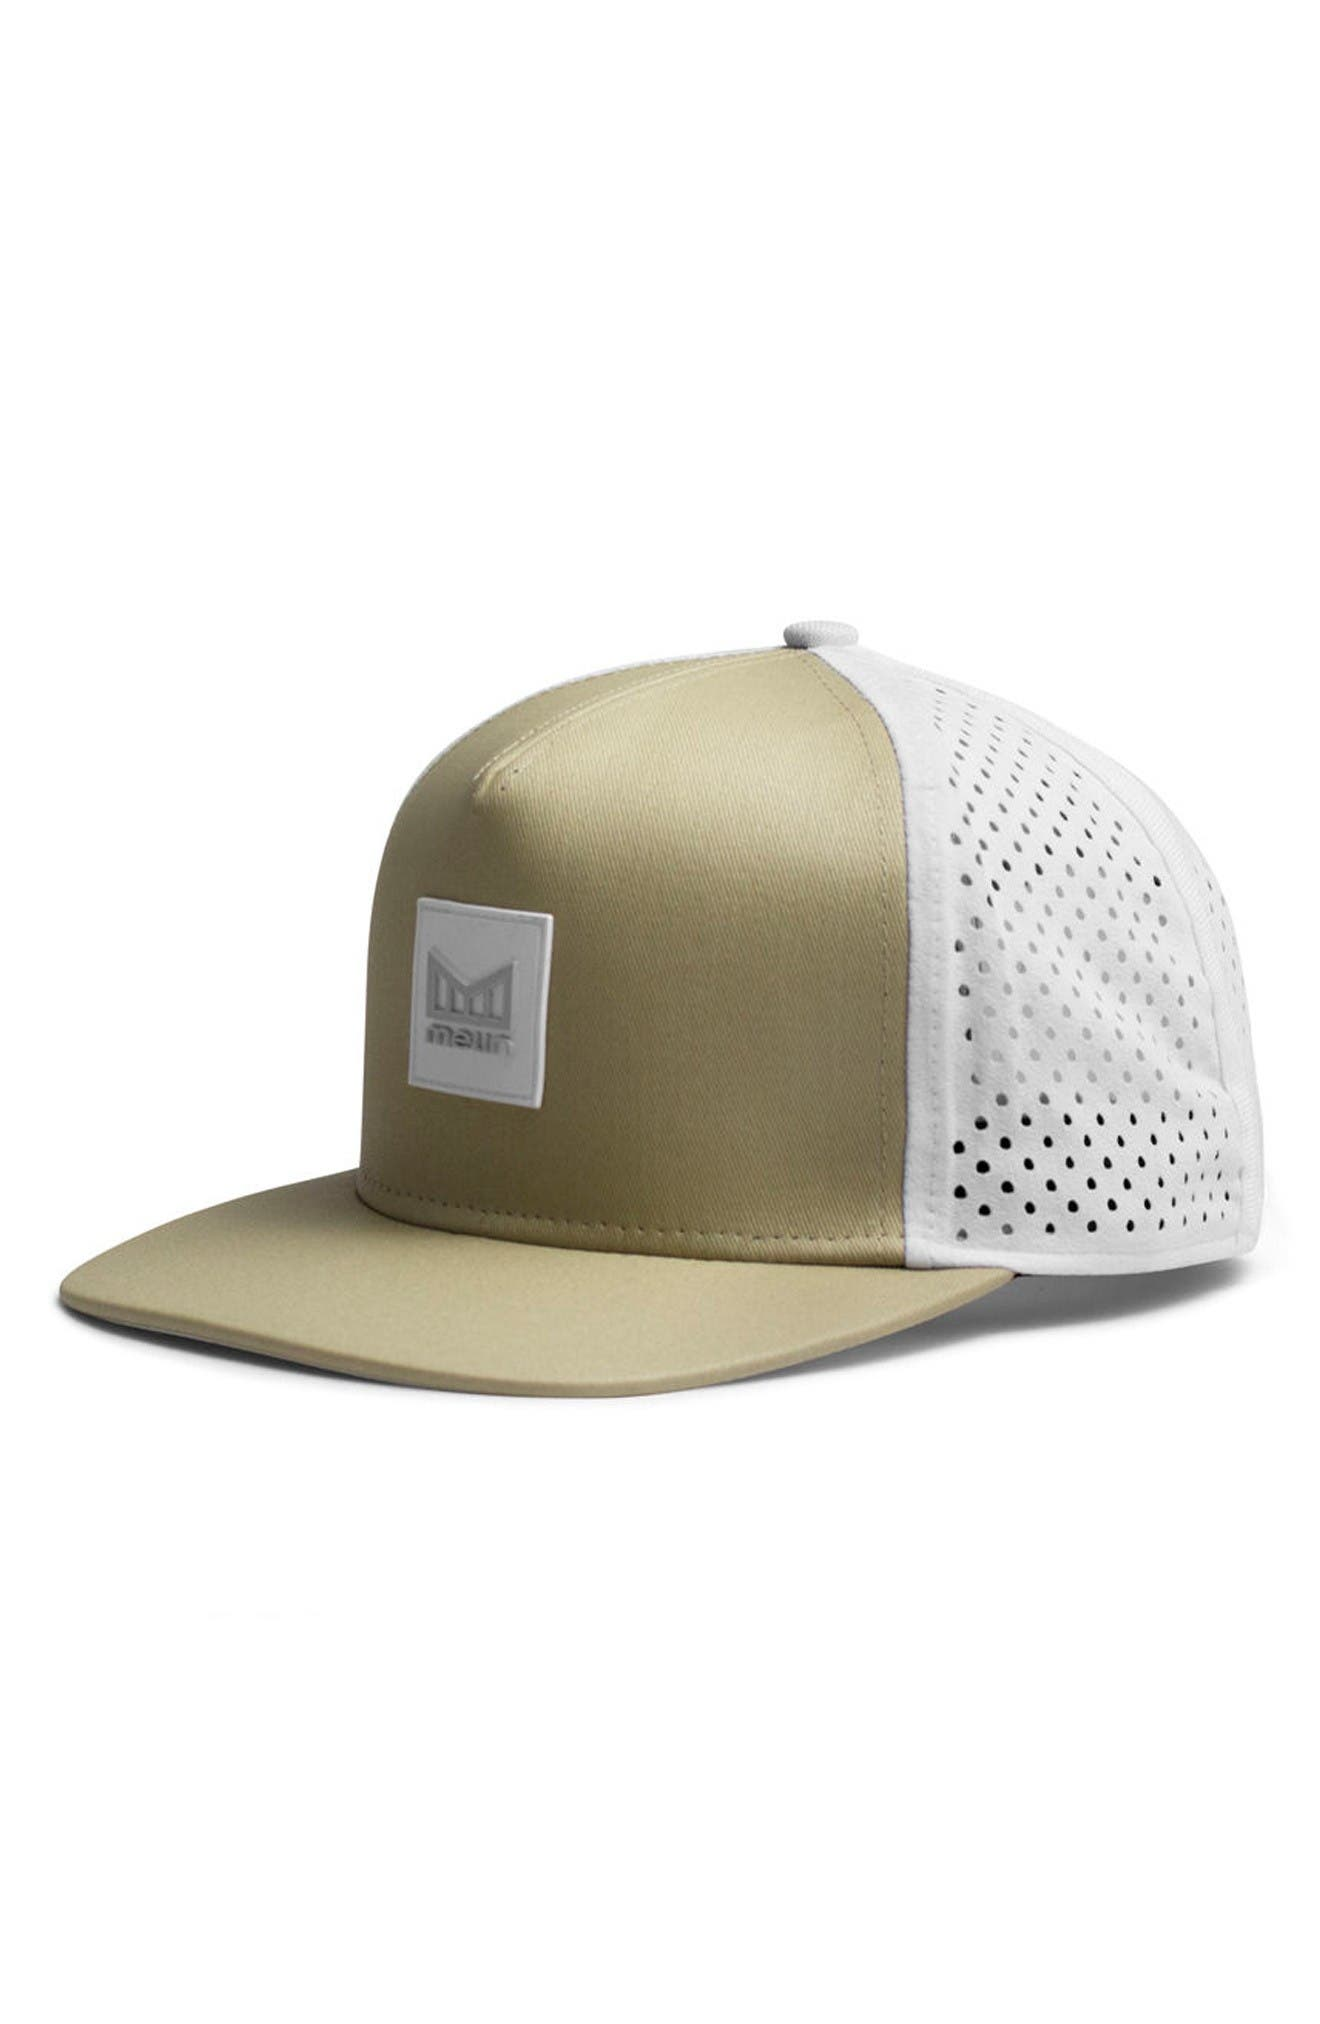 Main Image - Melin 'The Nomad' Split Fit Snapback Baseball Cap